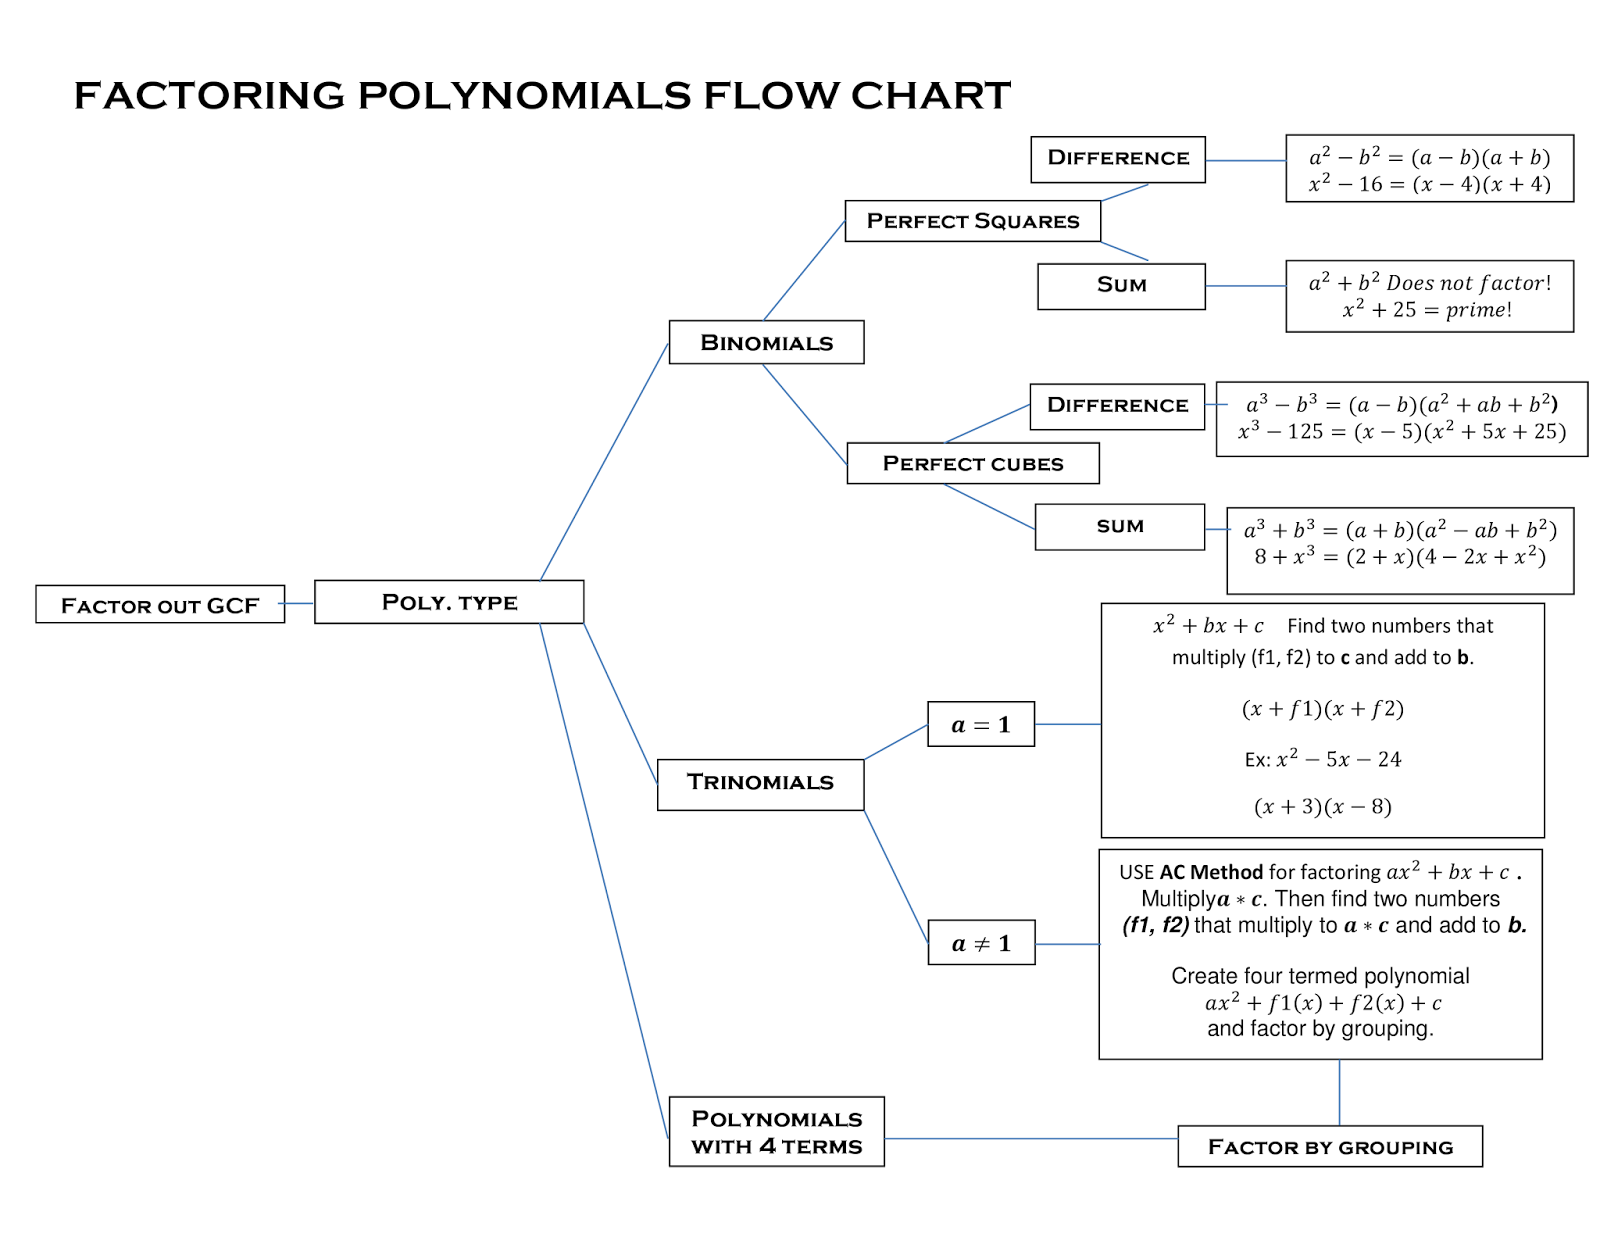 Free Worksheet Factoring Polynomials Worksheet Pdf reasonfanzach factoring flowchart flowchart